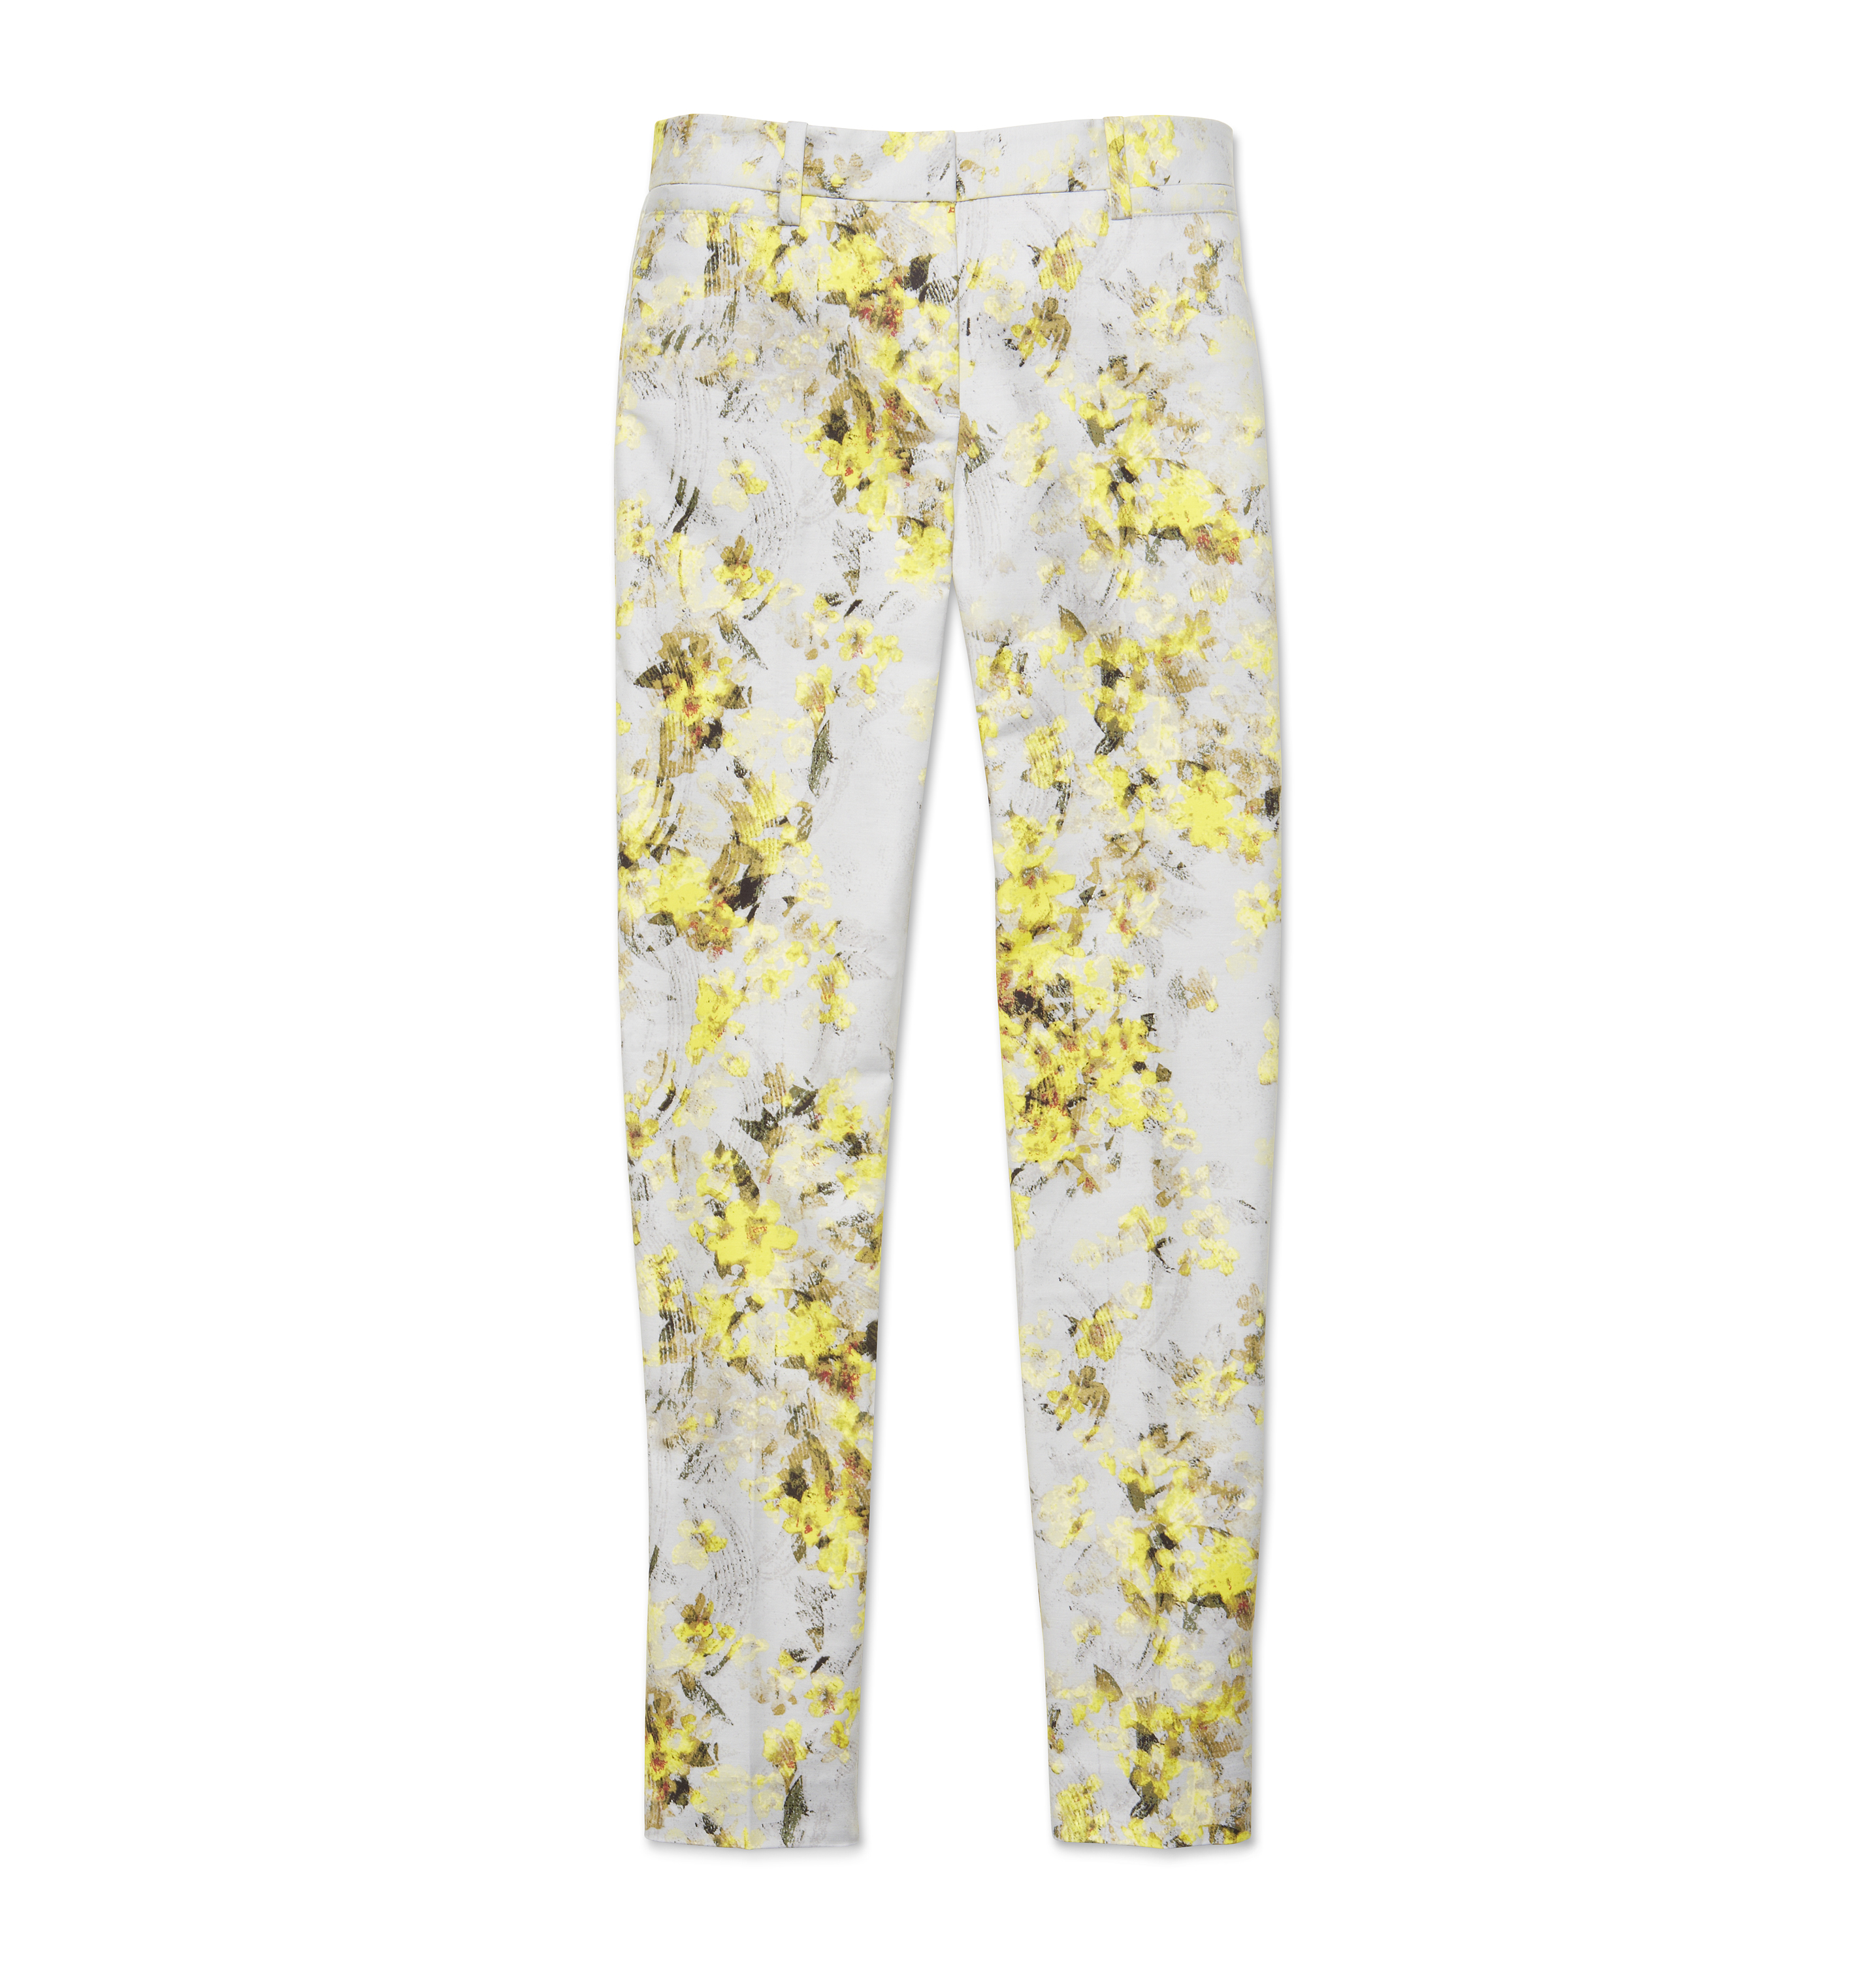 Women Pants/shorts Slim Print Pant High-res